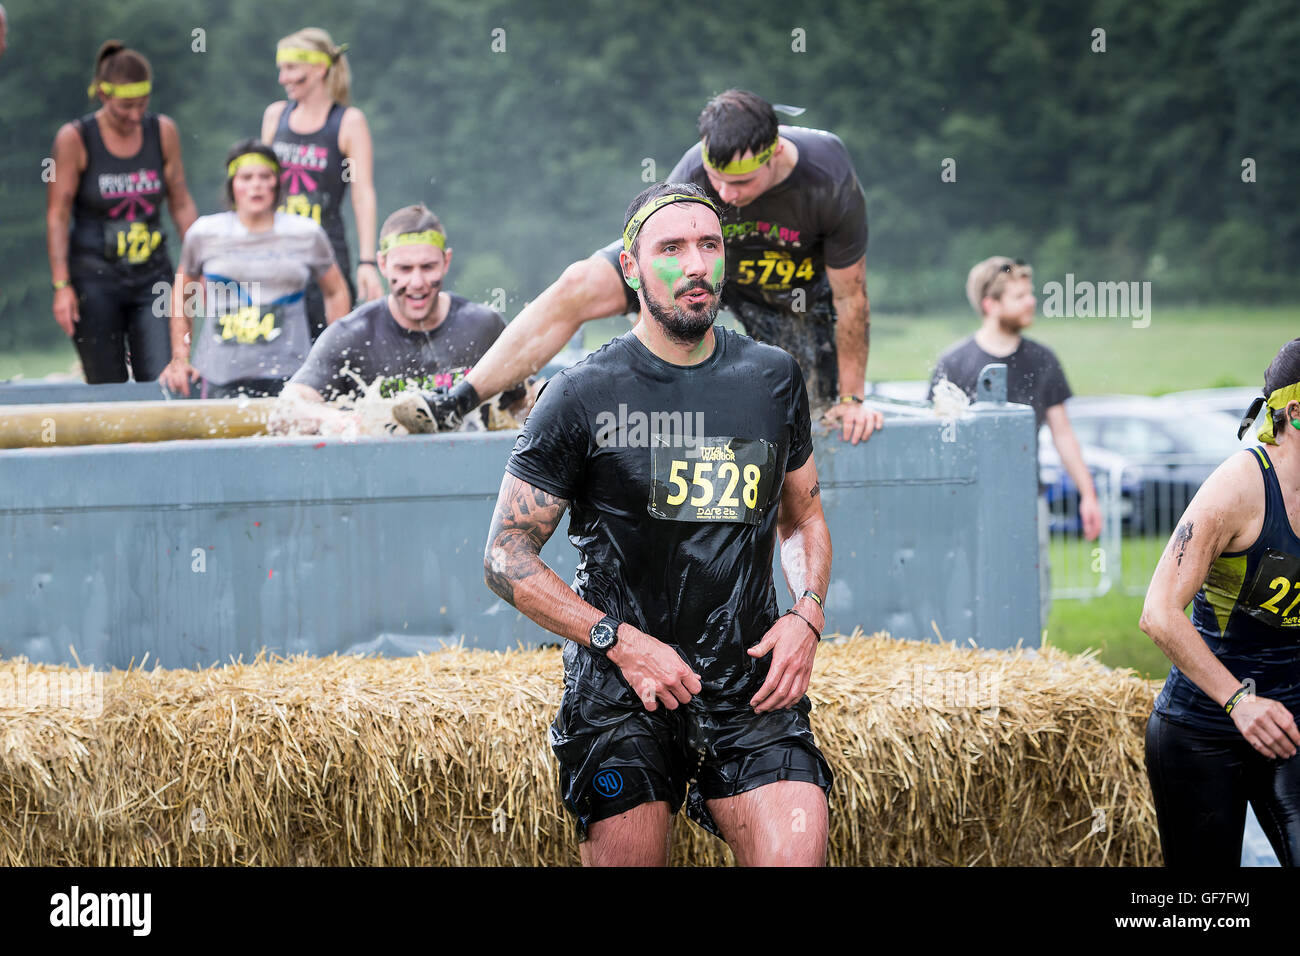 Adult competitors plunging into and climbing out of an ice-filled pool in a Total Warrior event at Leeds, 2016 - Stock Image